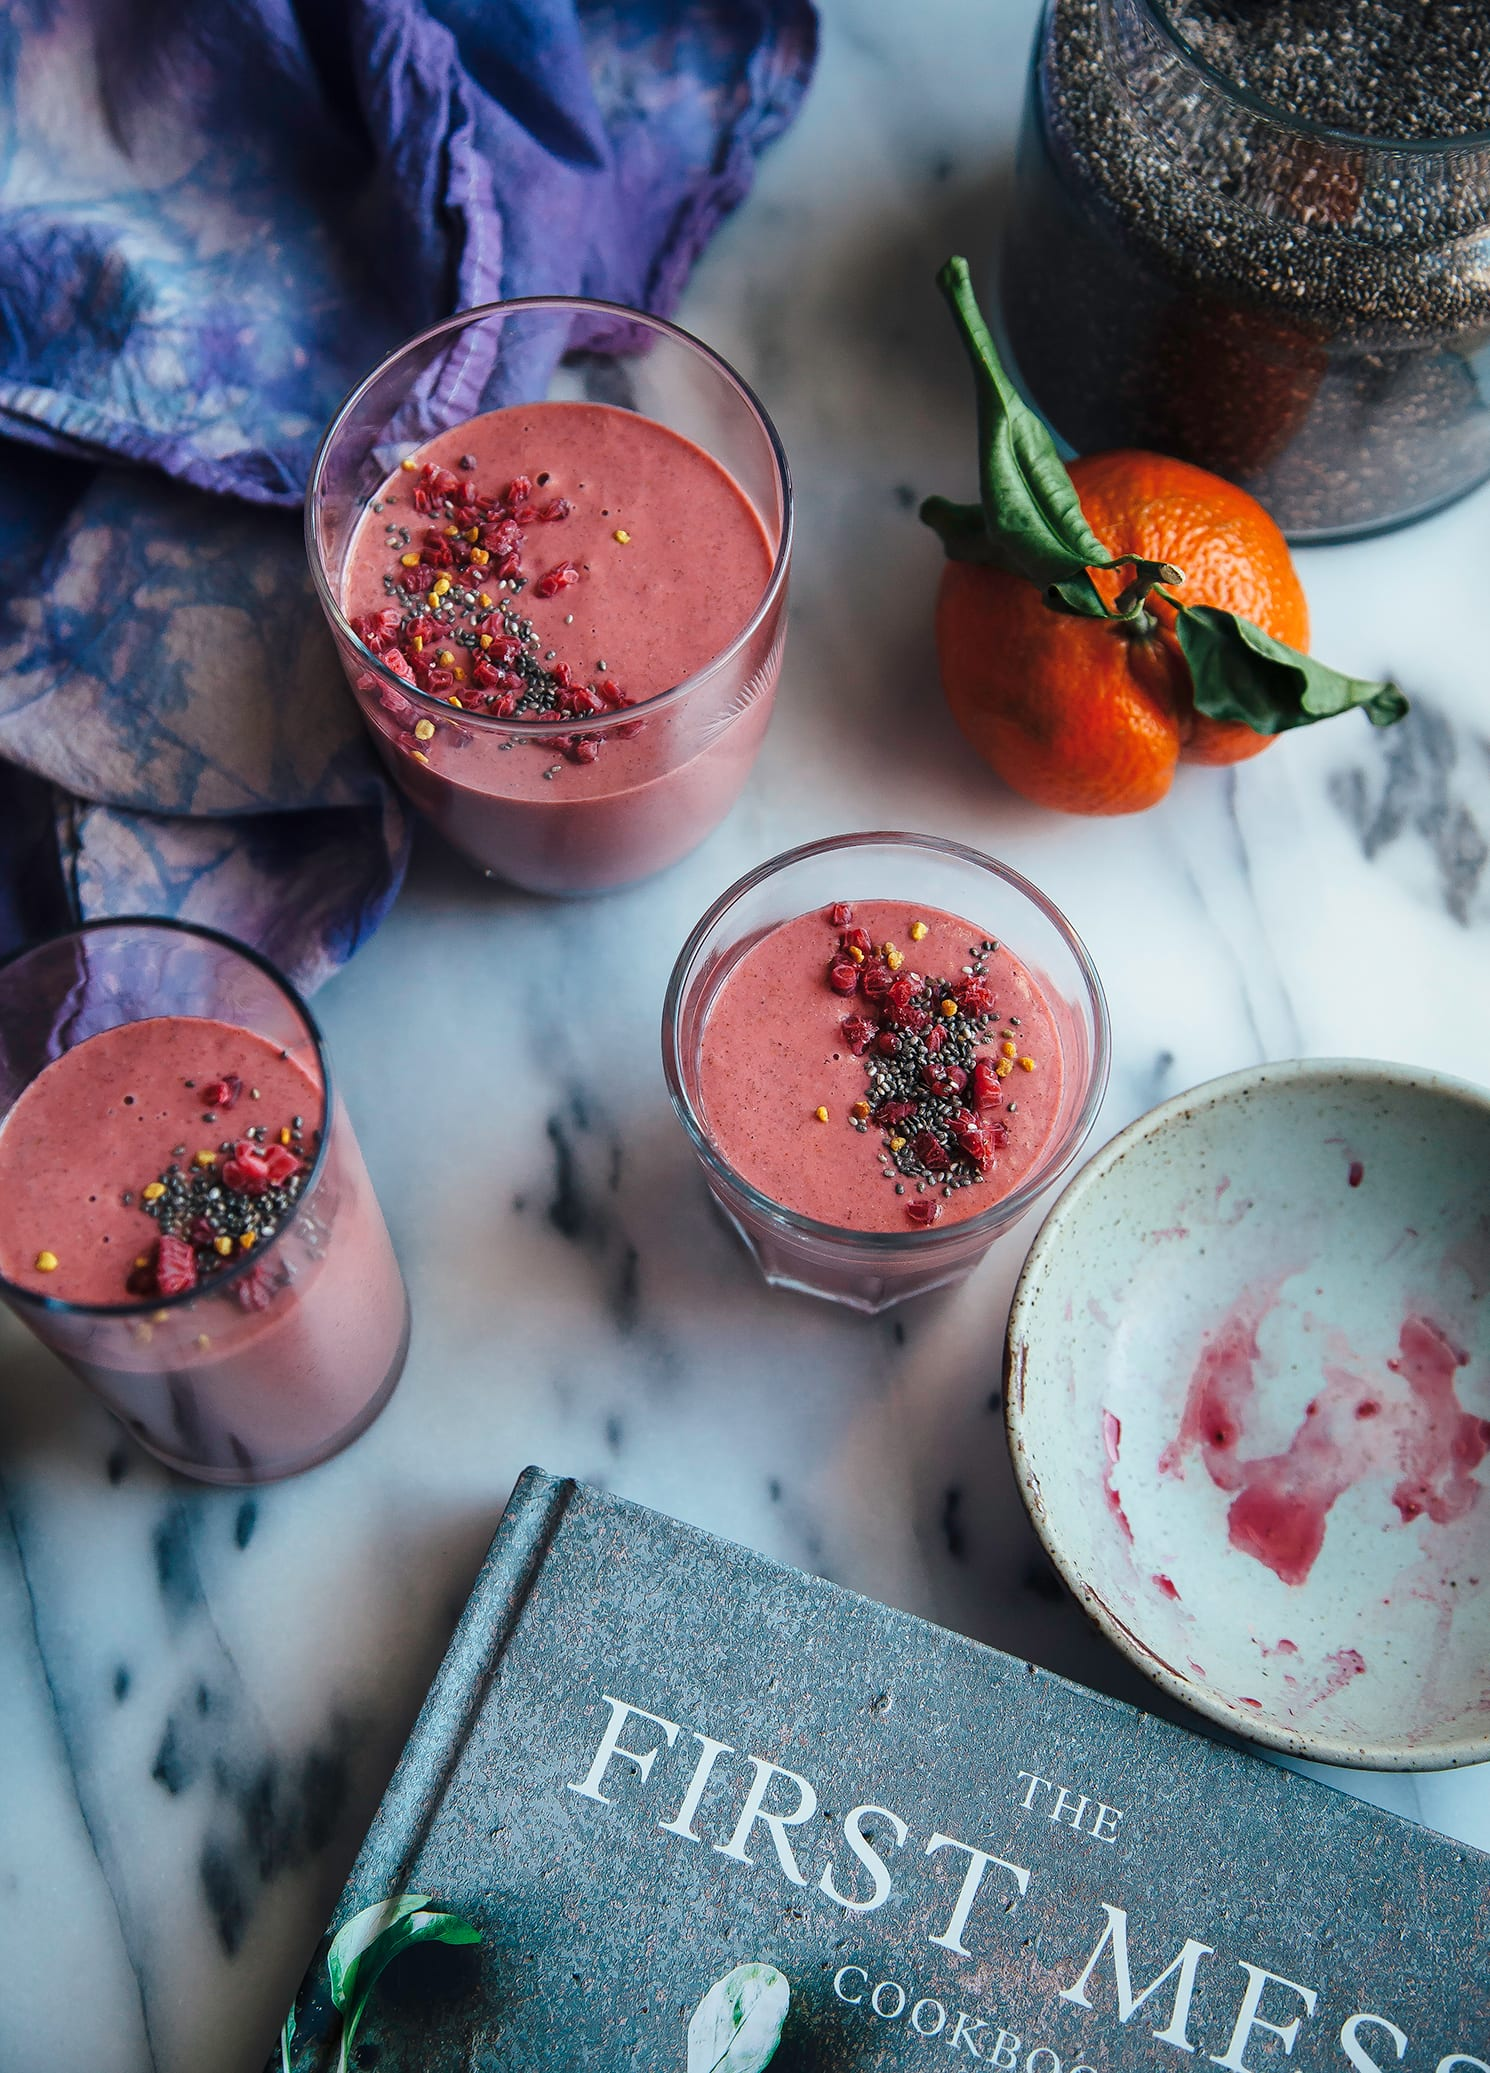 Overhead shot of a pink smoothie served in 3 glasses with The First Mess cookbook shown to the side.